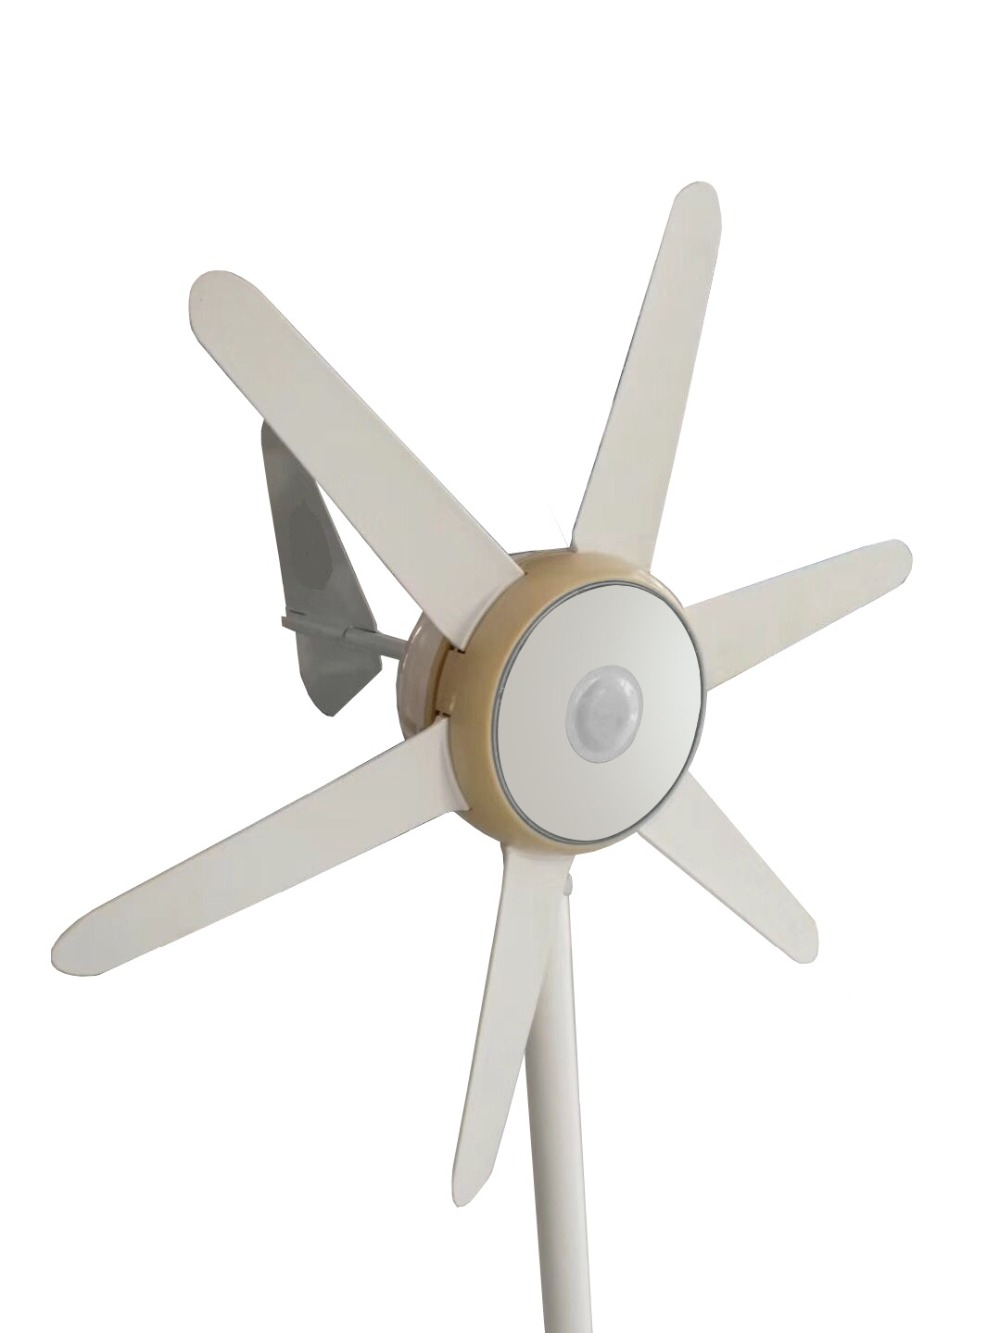 M-300 6 blades 150W Power DC 12V/24V Wind Energy Turbine Generator winder-driven for boat home with controller